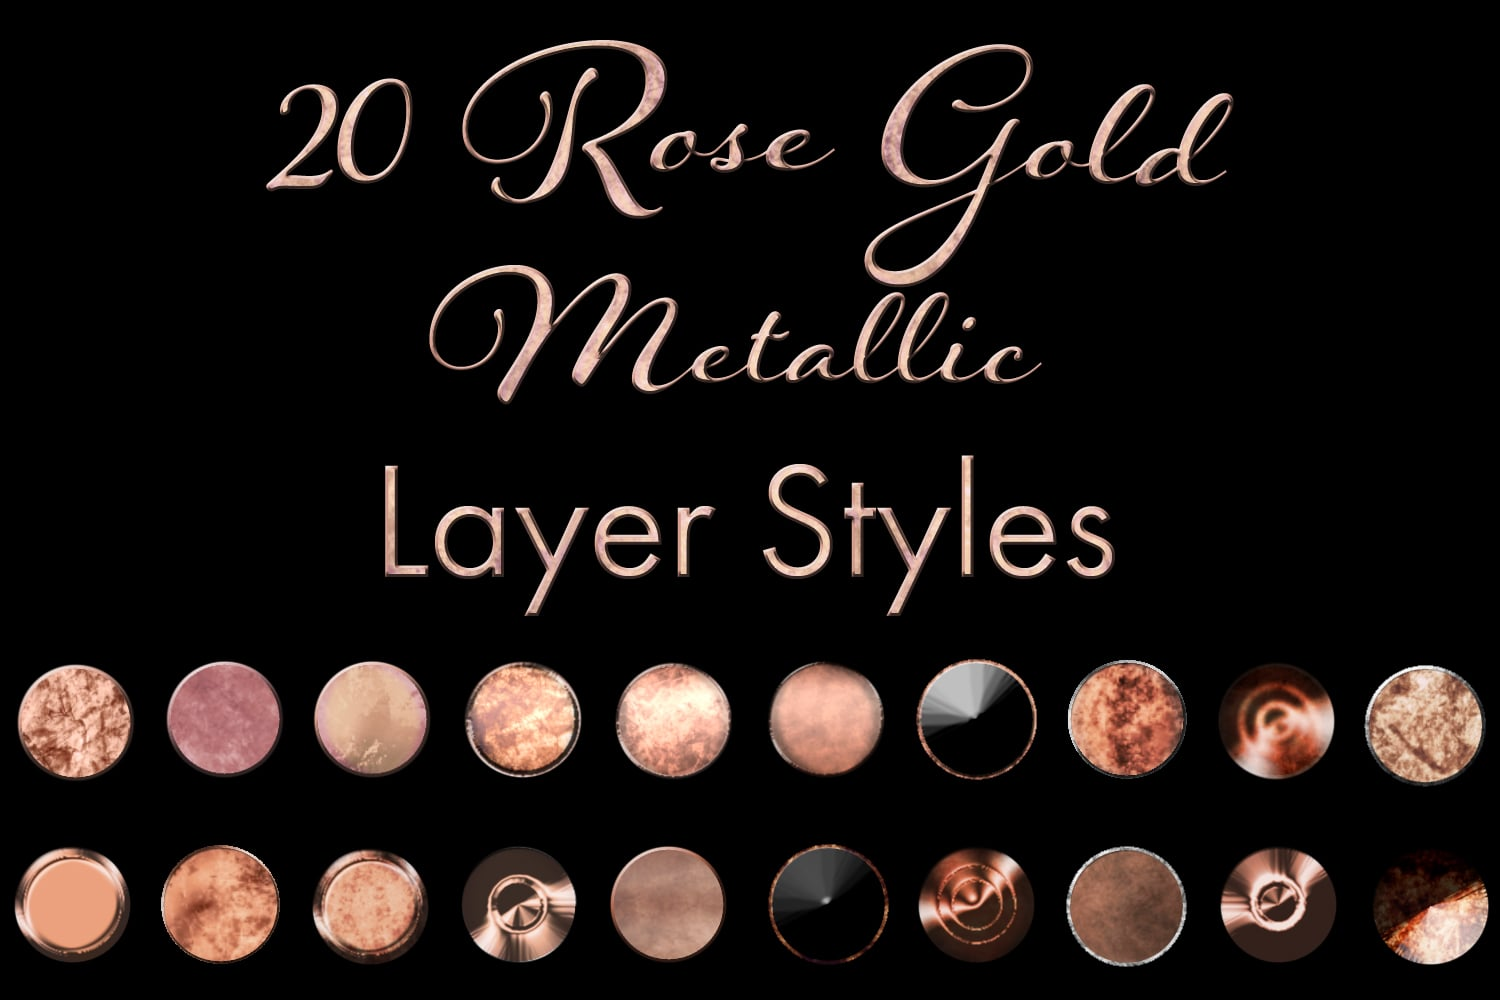 60 Best Photoshop Layer Styles - Gold Metallic, Rose Gold, Silver Metallic - $7 - 18609631bae6d5f84af0daf54c90270e resize